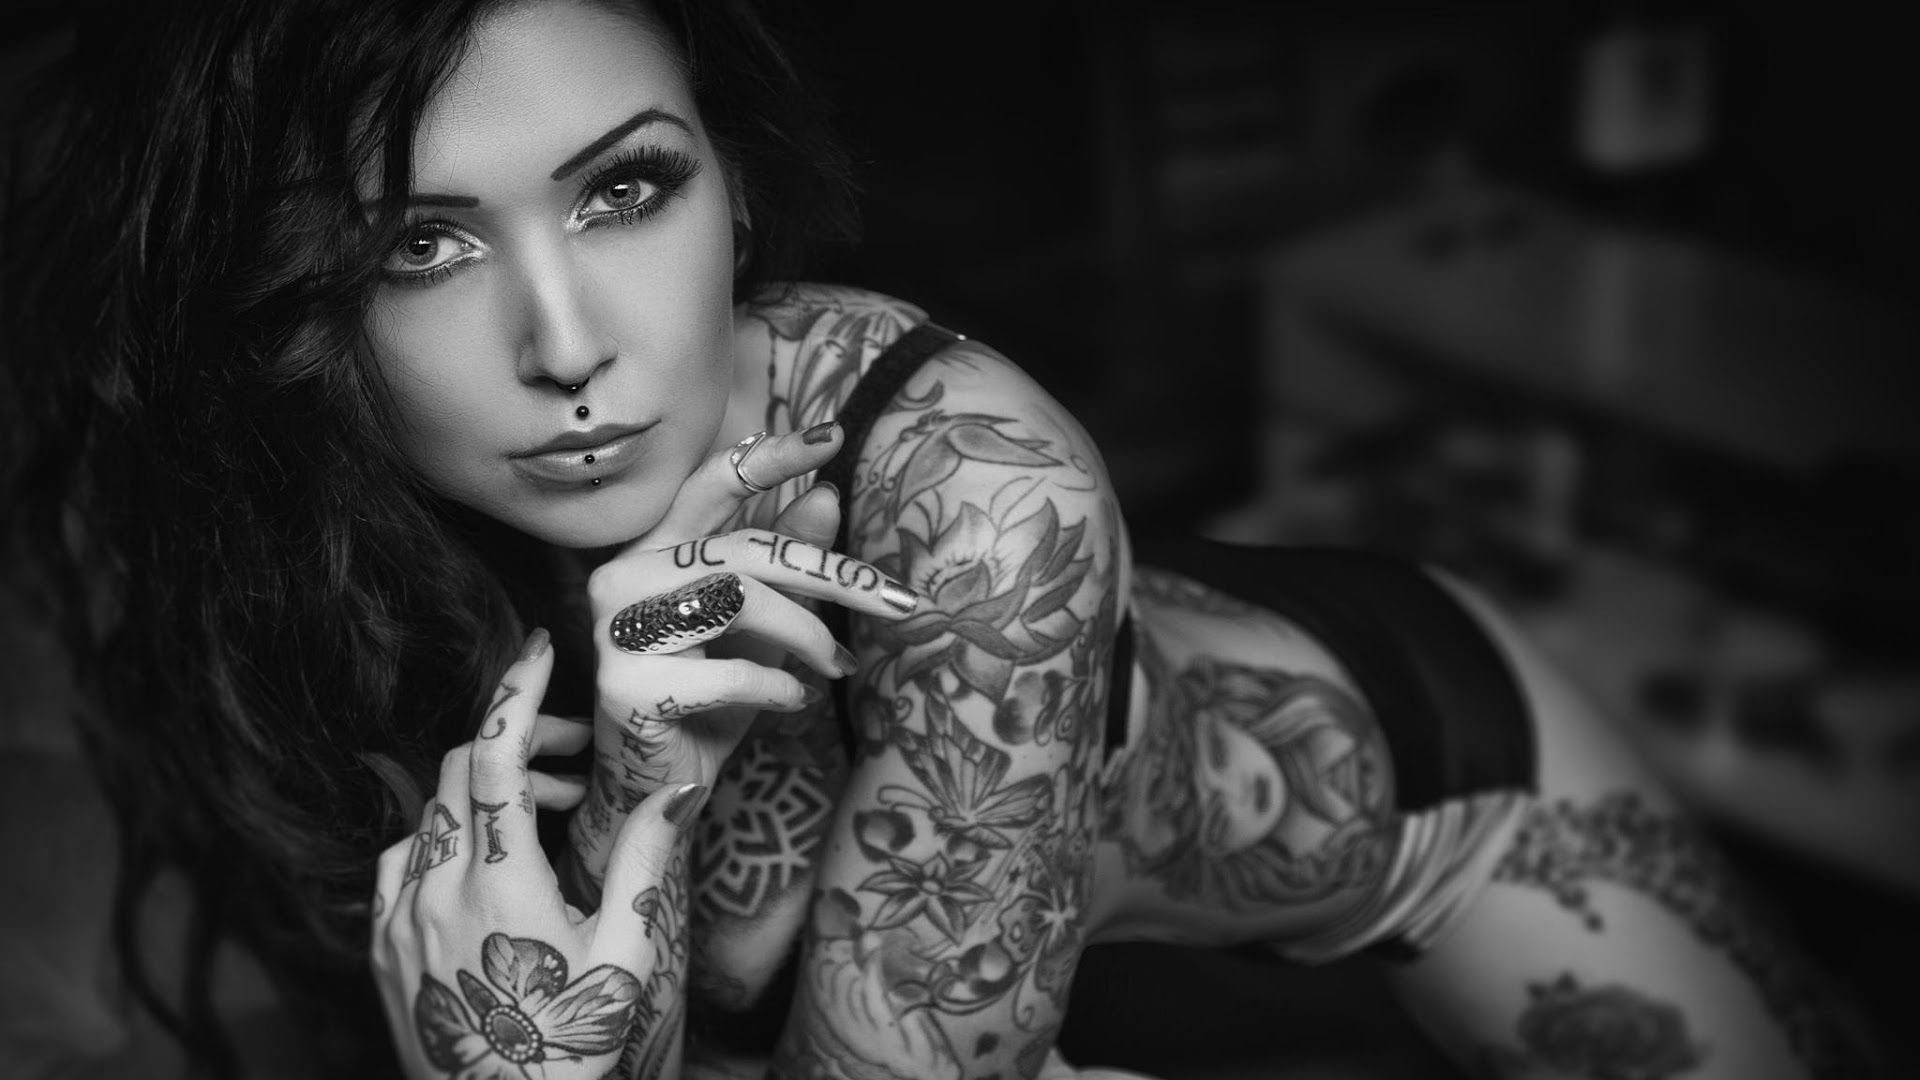 The following is a collection of wonderful Tattoo Ideas For Girls. TheseTattoo Ideas For Girls are different from general ideas,to give your tattoo the unique look you were wanting. Many girls look for tattoo ideas as they see tattoos as a way of expression of their personality. So go ahead and look at the following …